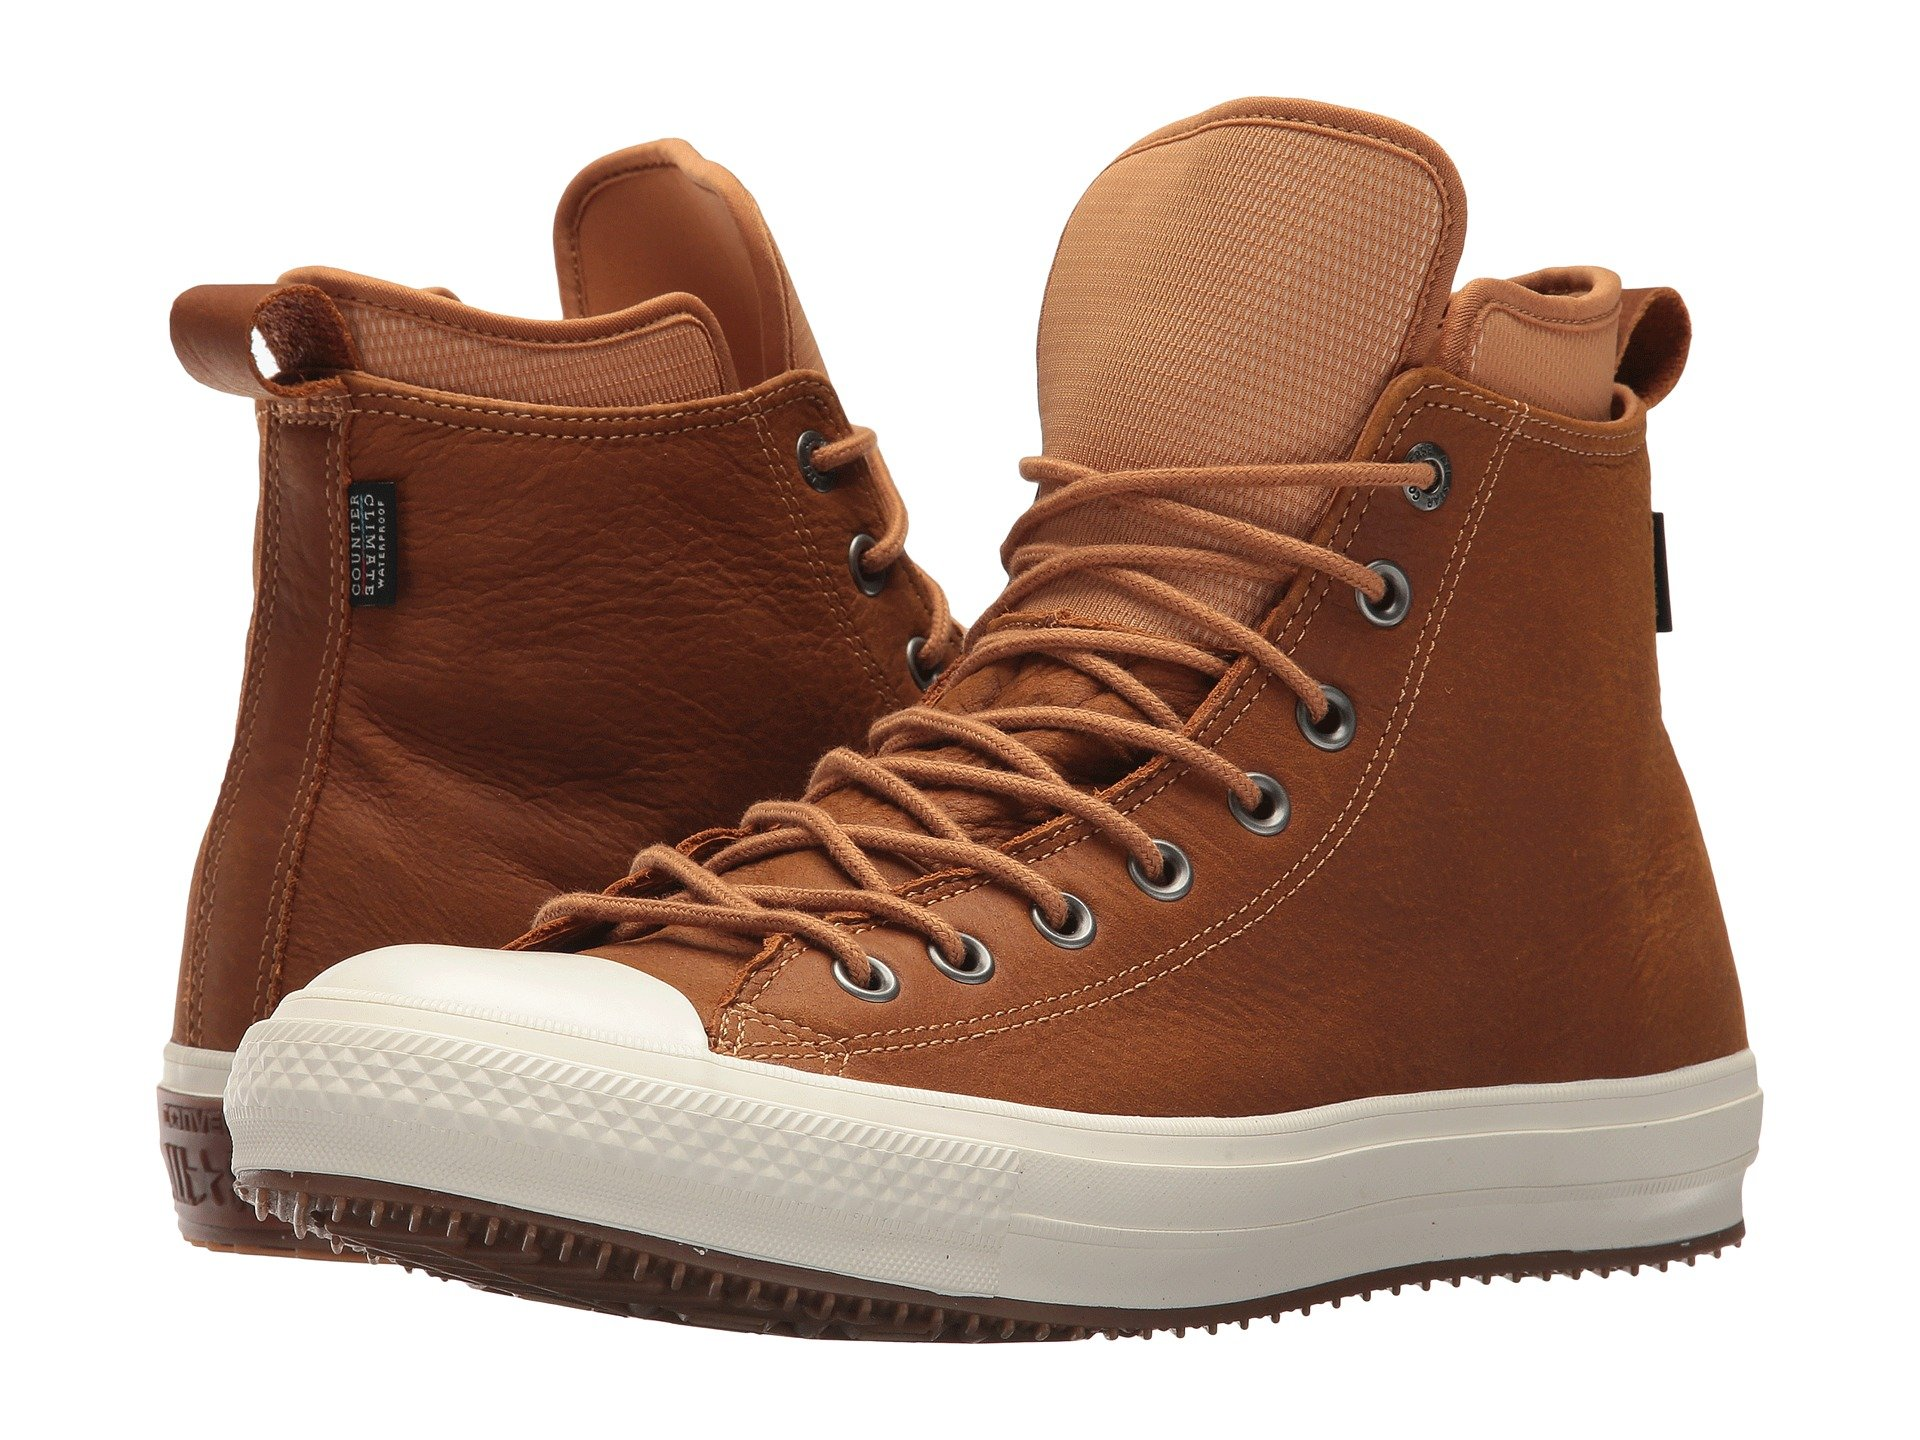 58b3c2741d6 CONVERSE. Chuck Taylor® All Star® Waterproof Boot Nubuck Hi in Raw Sugar  Egret Gum